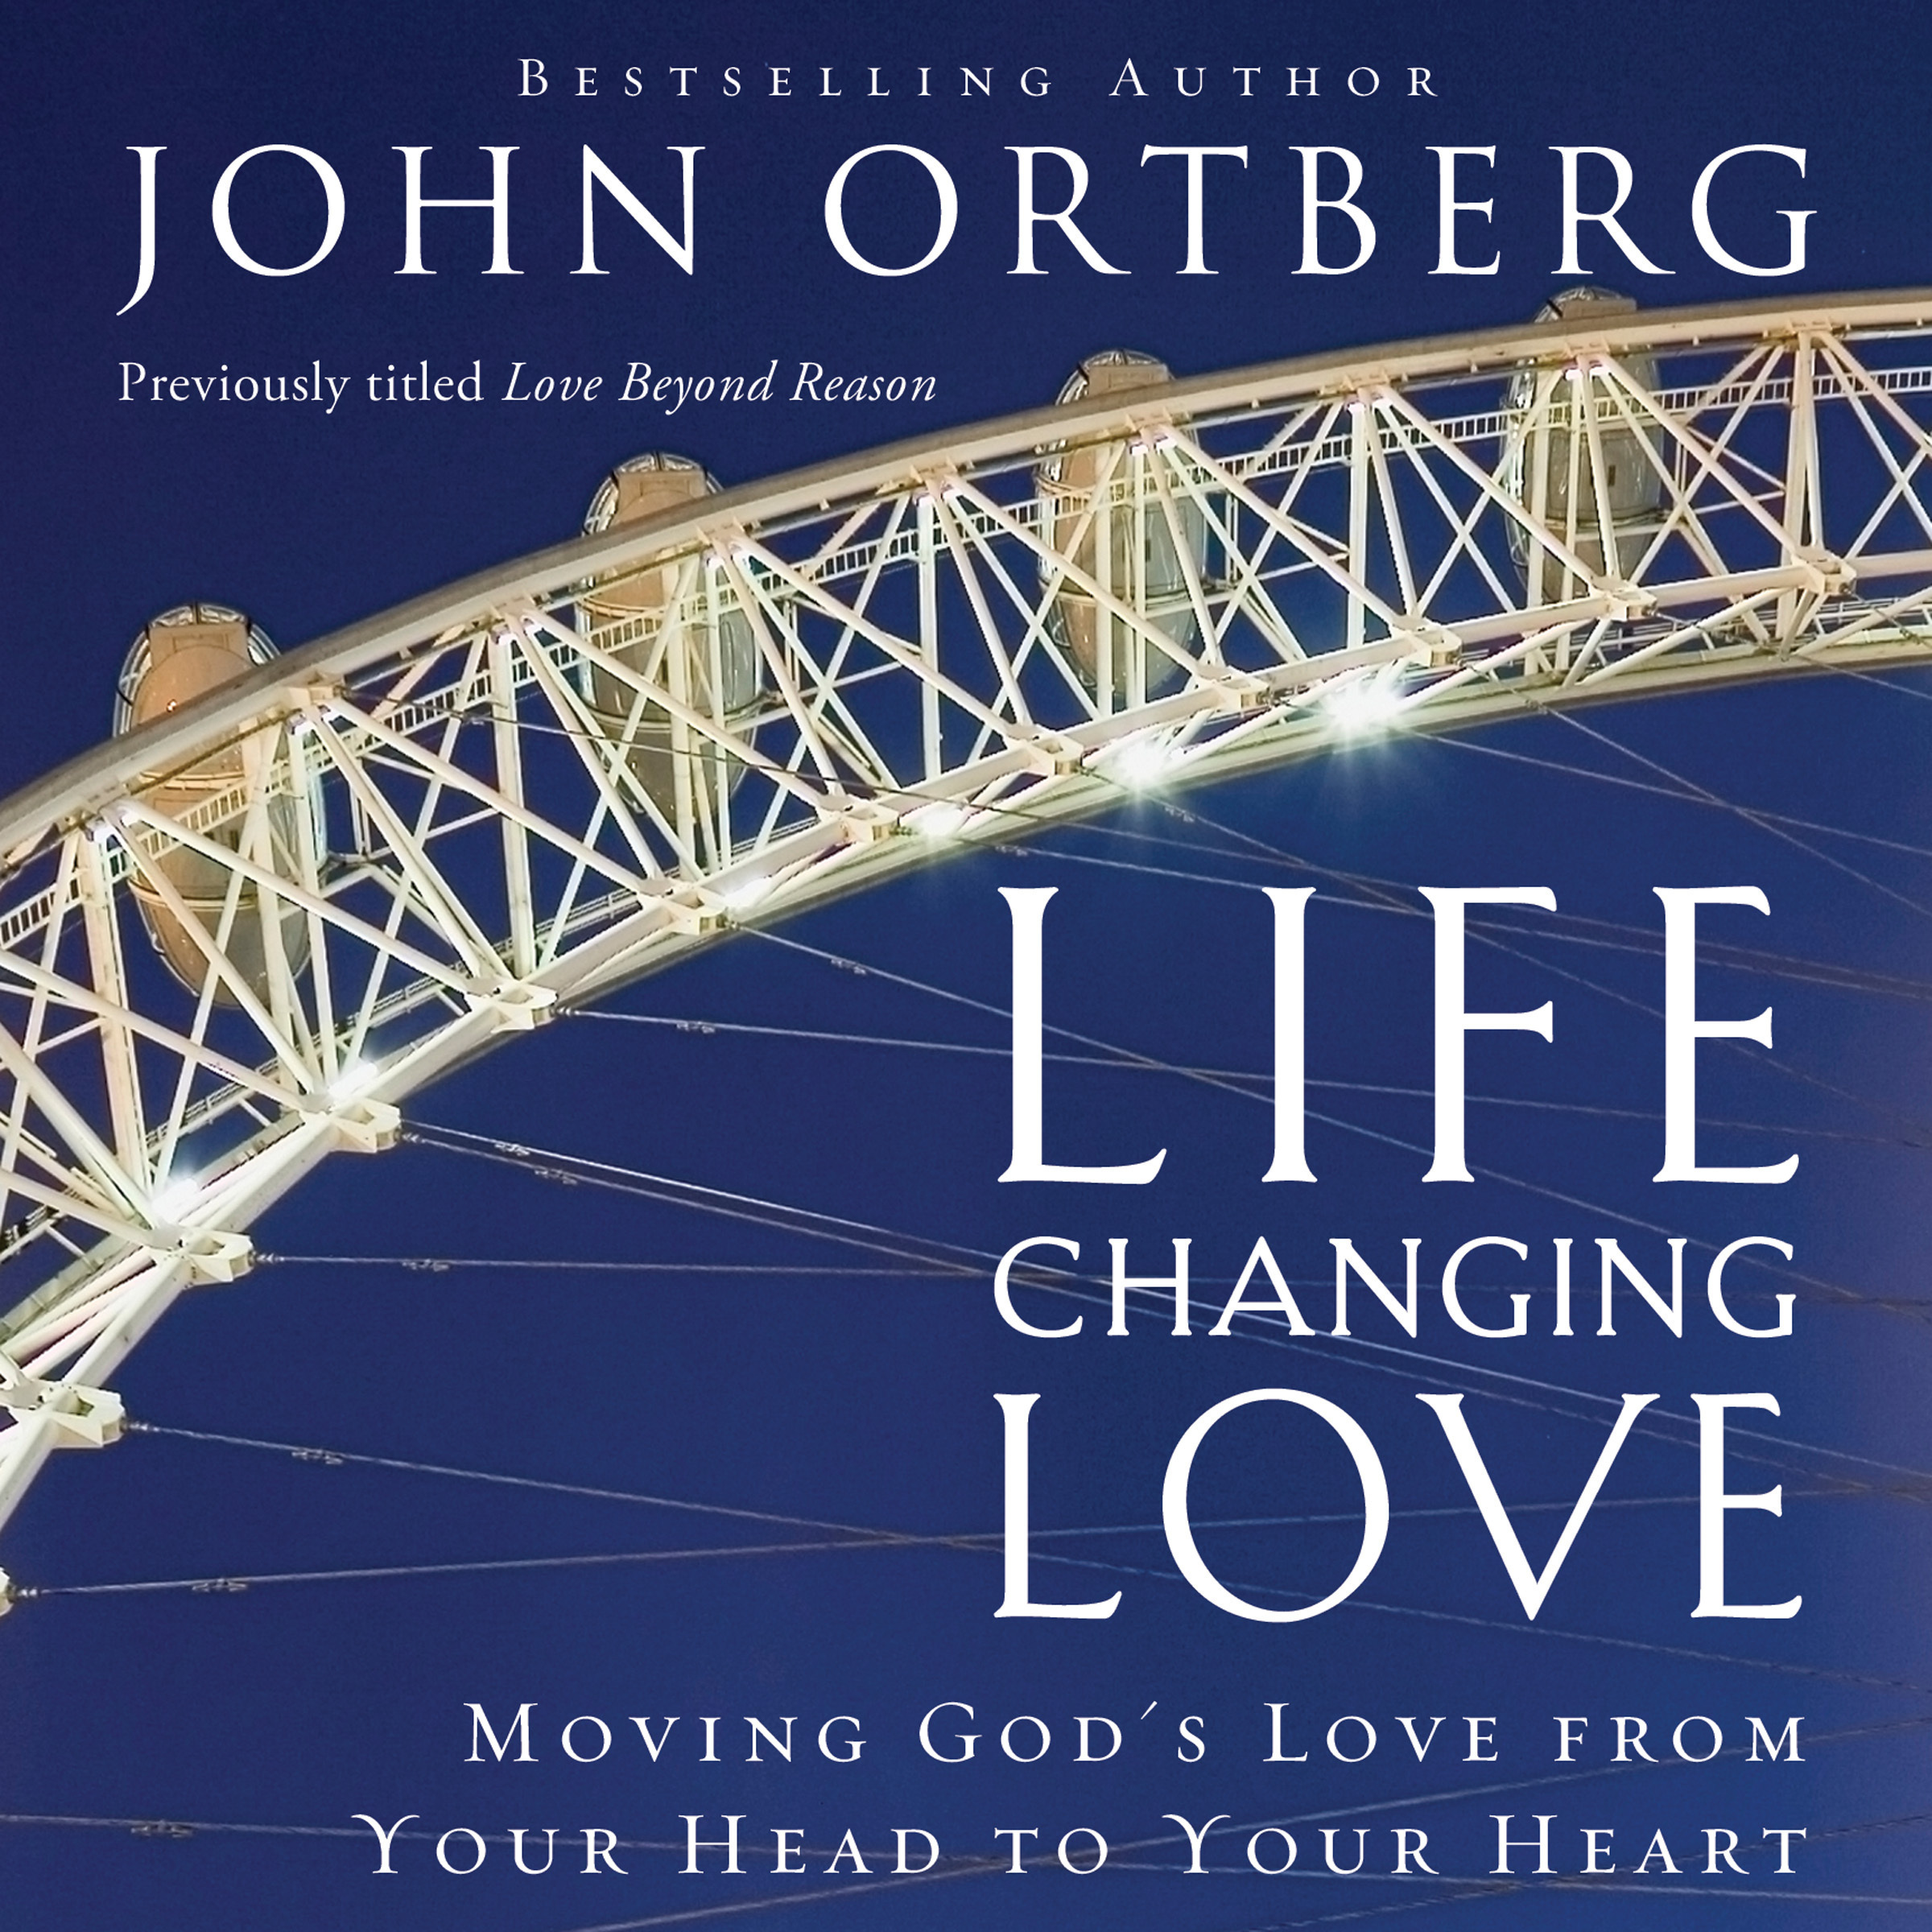 Printable Life-Changing Love: Moving God's Love from Your Head to Your Heart Audiobook Cover Art